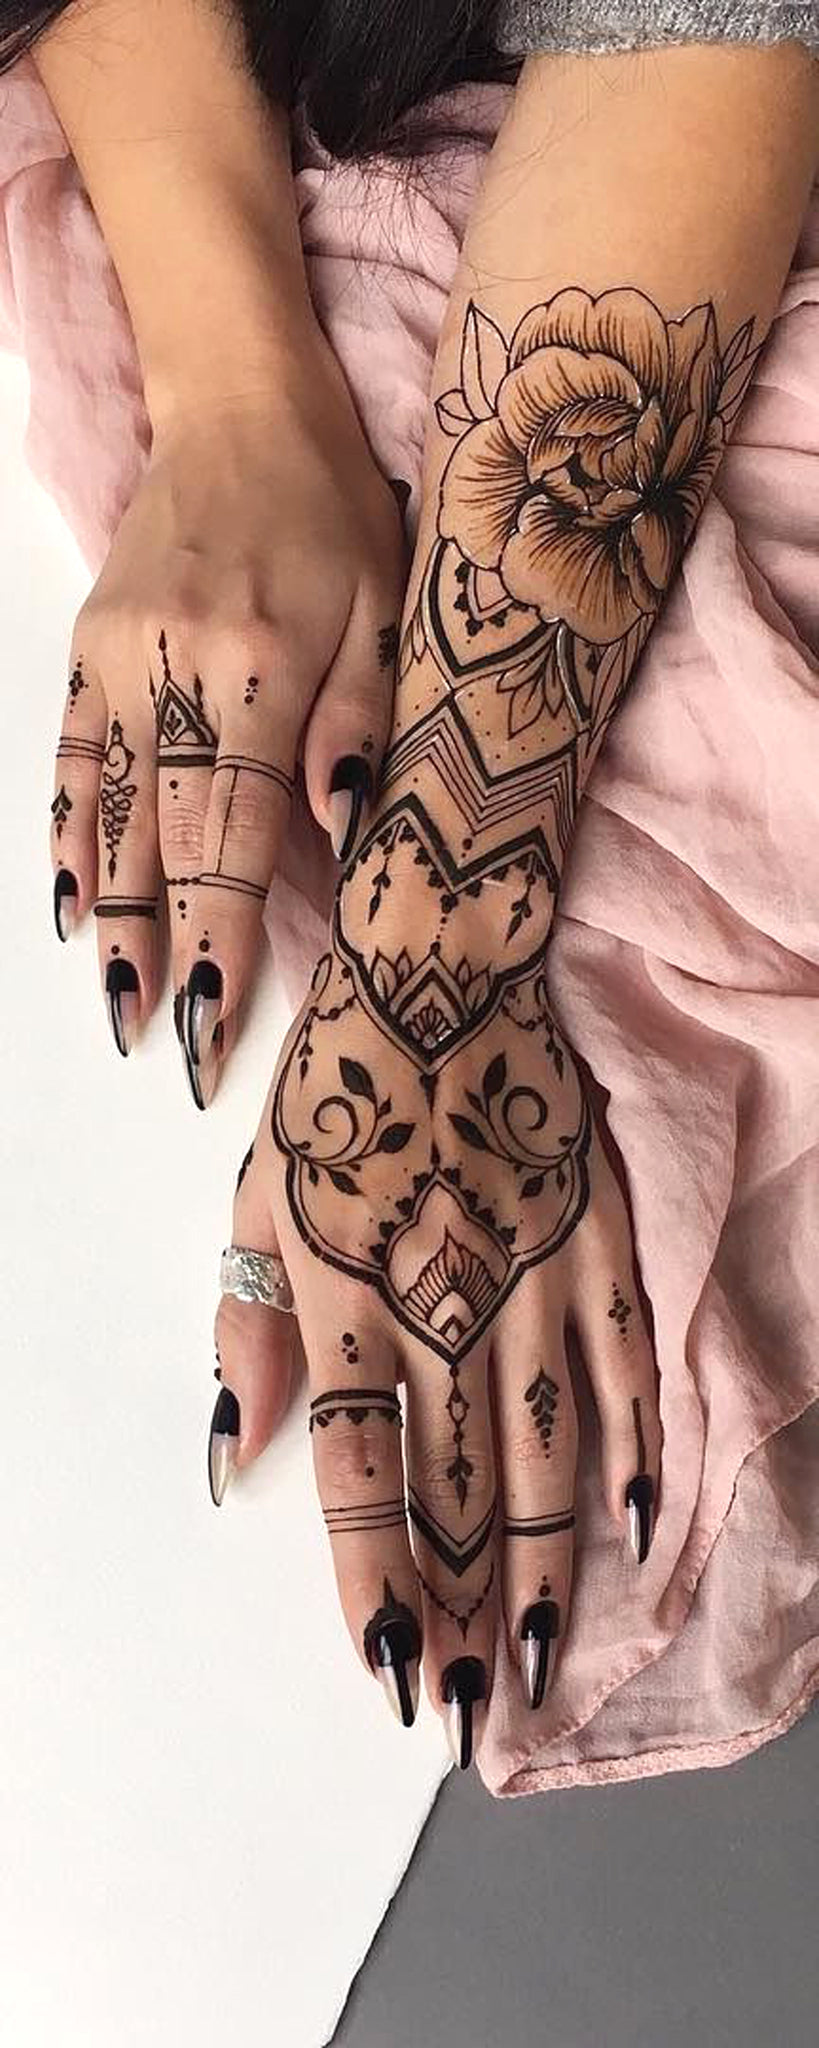 Henna Rose Tattoo: 30+ Unique Arm Tattoo Ideas That Are Simple Yet Have